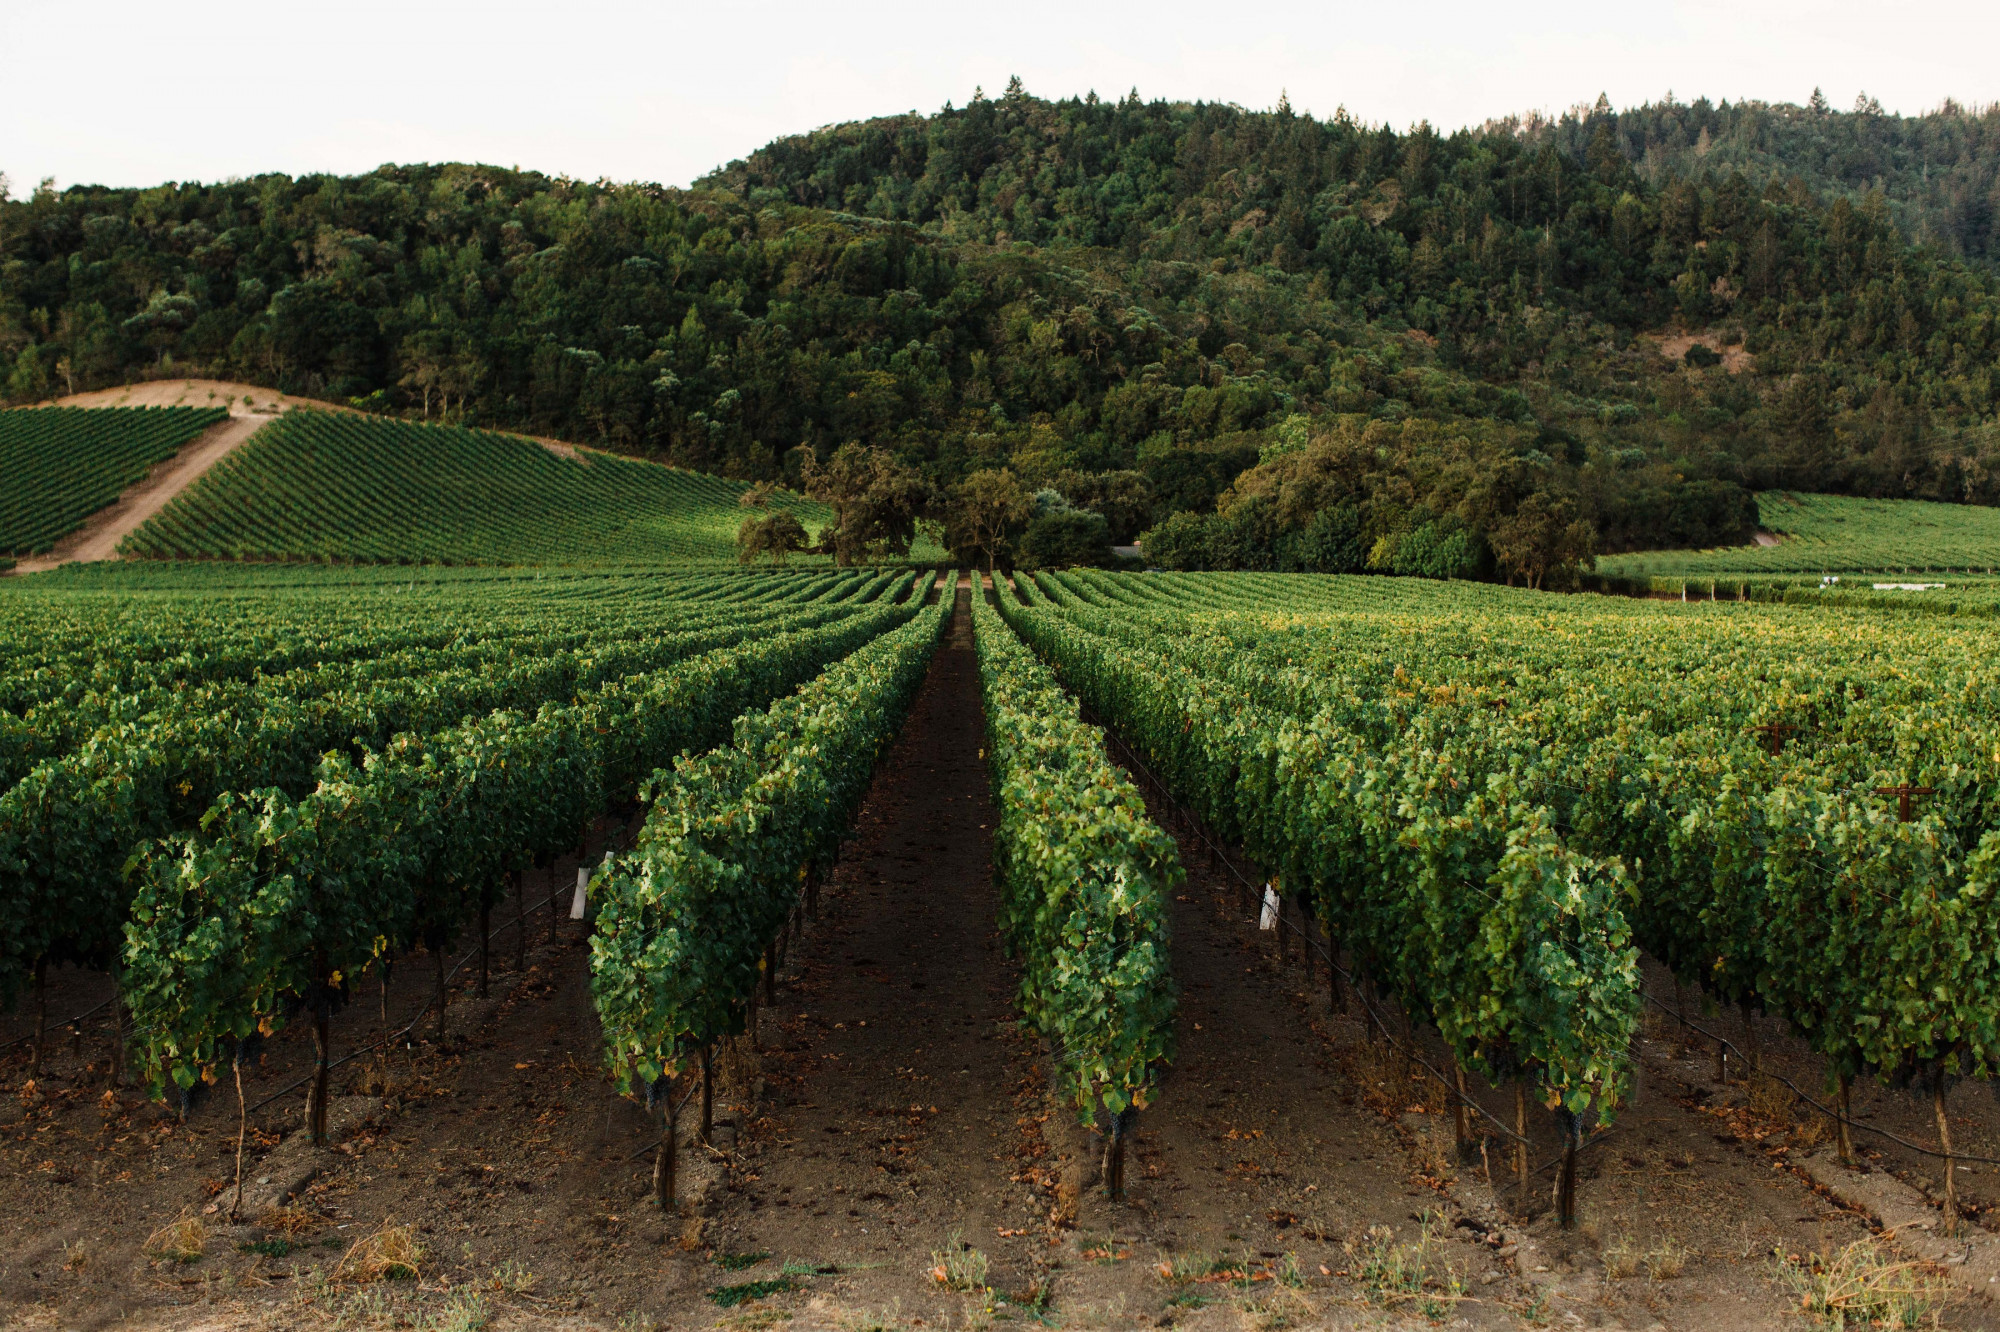 Rows of Cabernet Sauvignon vines at Vine Hill Ranch. Photo by Sarah Anne Risk